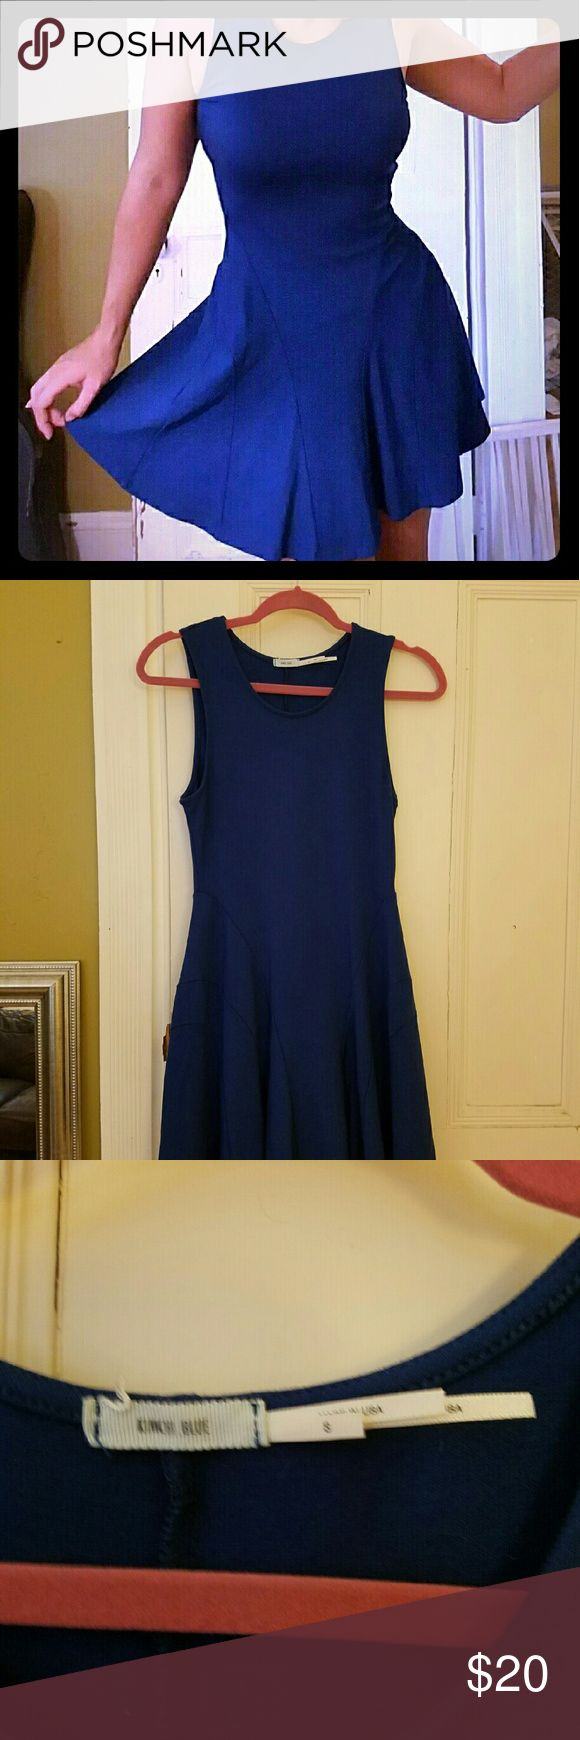 UO Blue Pleated Dress This simple, elegant dress is perfect for any occasion! Dark blue with pleating in the front, the cut is somewhere between drop waist and fit-and-flare. Urban Outfitters Dresses